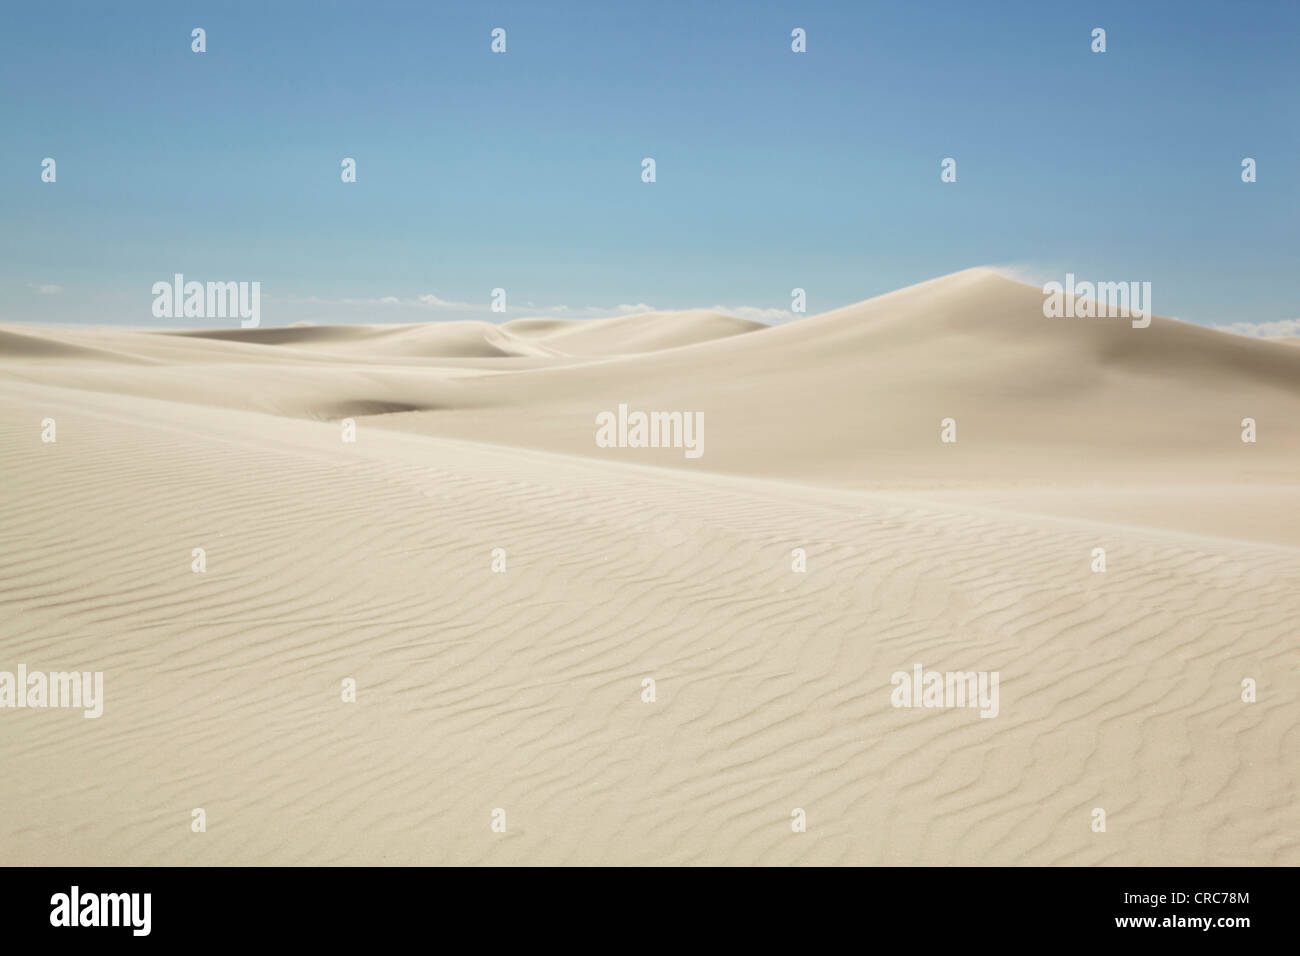 Ripples in sand dunes - Stock Image